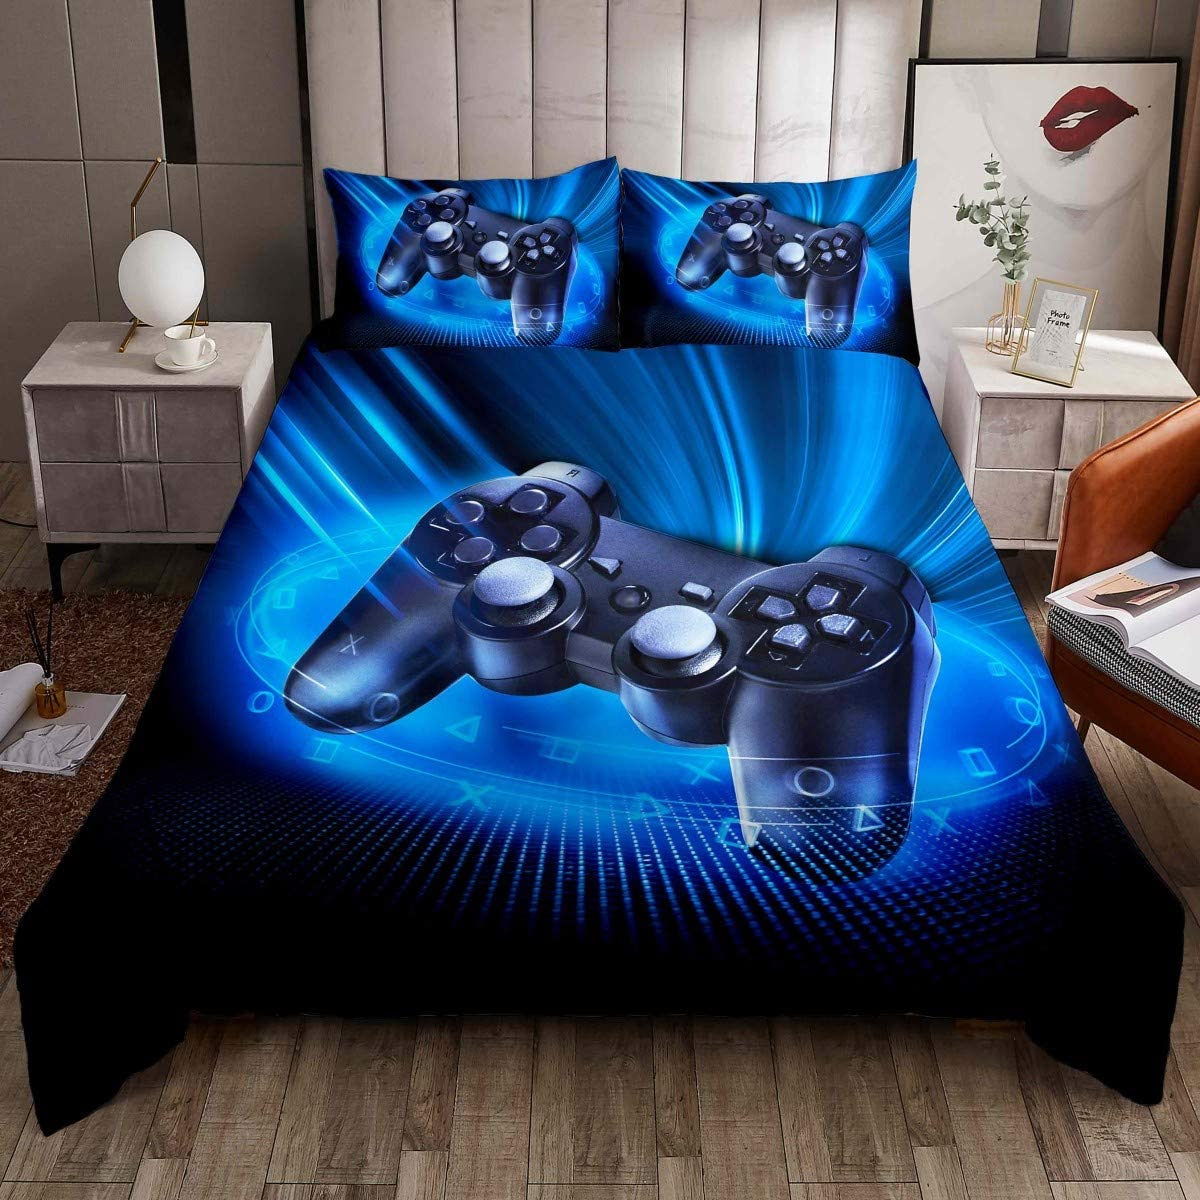 Games Comforter Cover Twin, Gamepad Bedding Set for Boys, Kids Video Games Bedding Set Teens Modern Gamer Duvet Cover Set Decorative Gaming Controller Bedding Collection with Pillowcase, Blue 2 Pcs